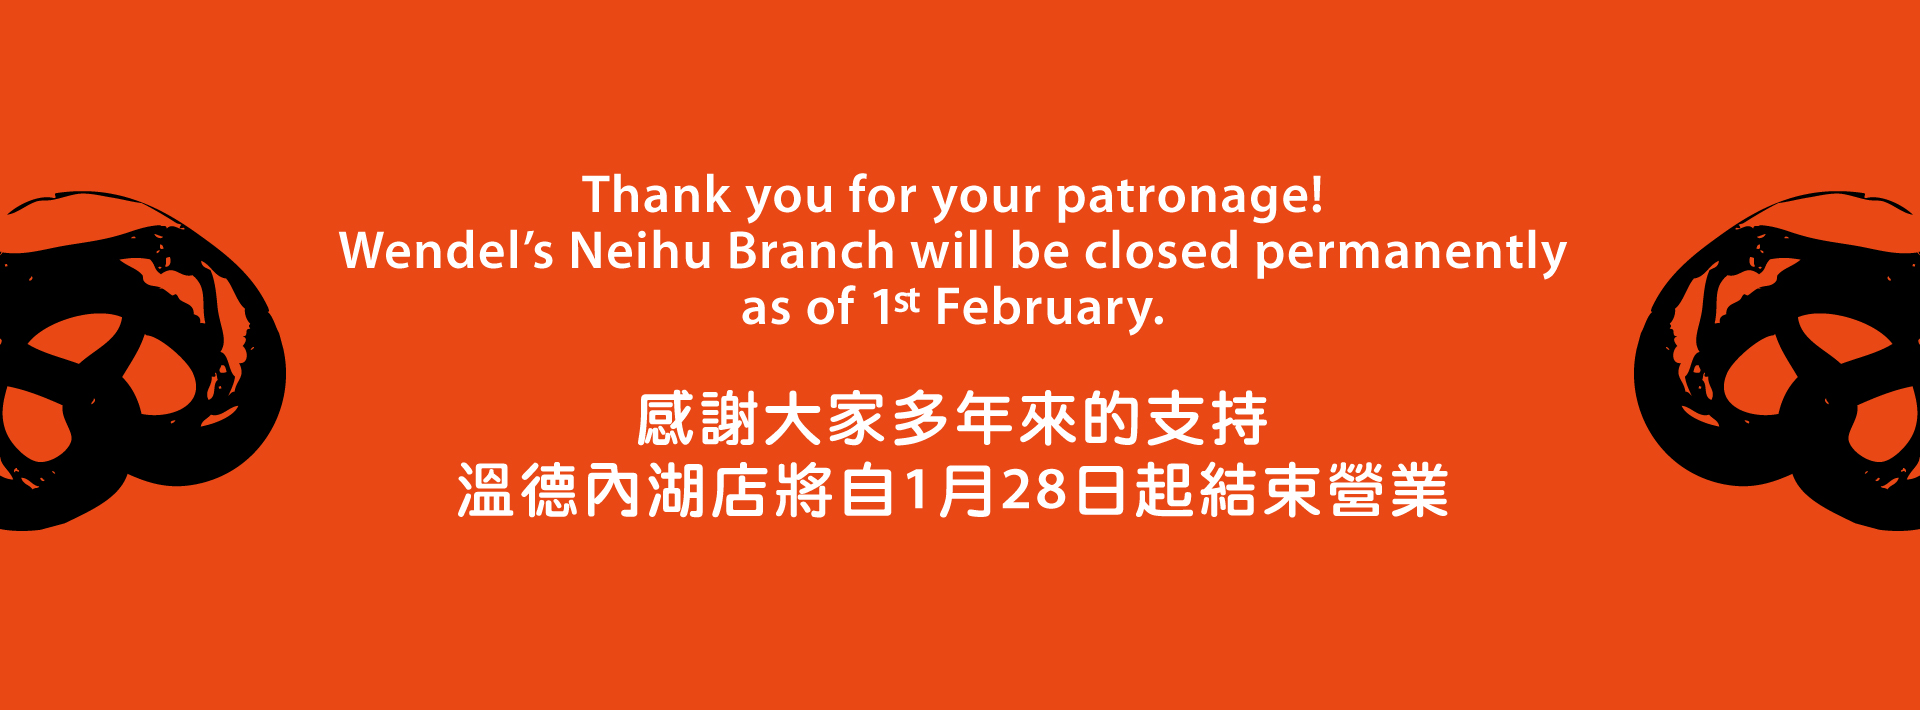 Neihu branch will be closed permanently as of 1st February